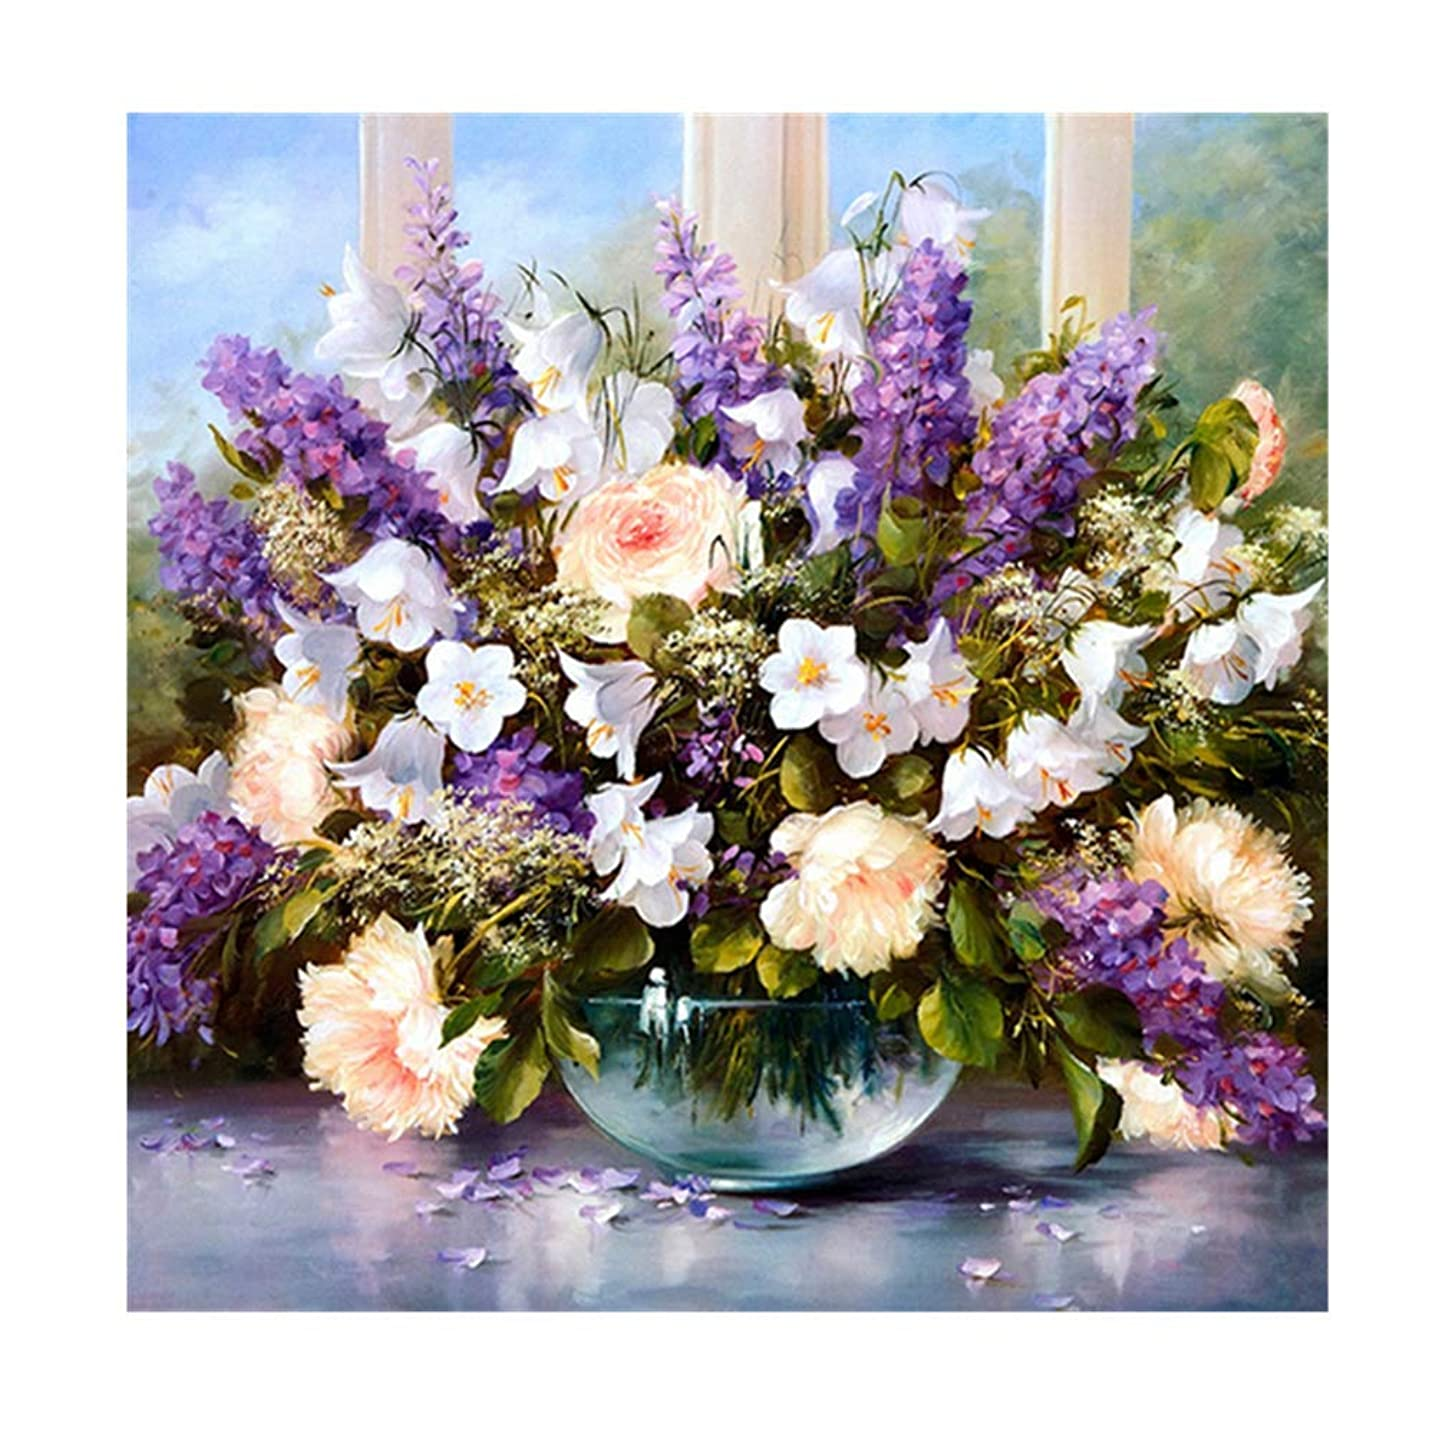 YEESAM ART New 5D Diamond Painting Kit - Rose Lavender Flowers - DIY Crystals Diamond Rhinestone Painting Pasted Paint by Number Kits Cross Stitch Embroidery (Flowers)